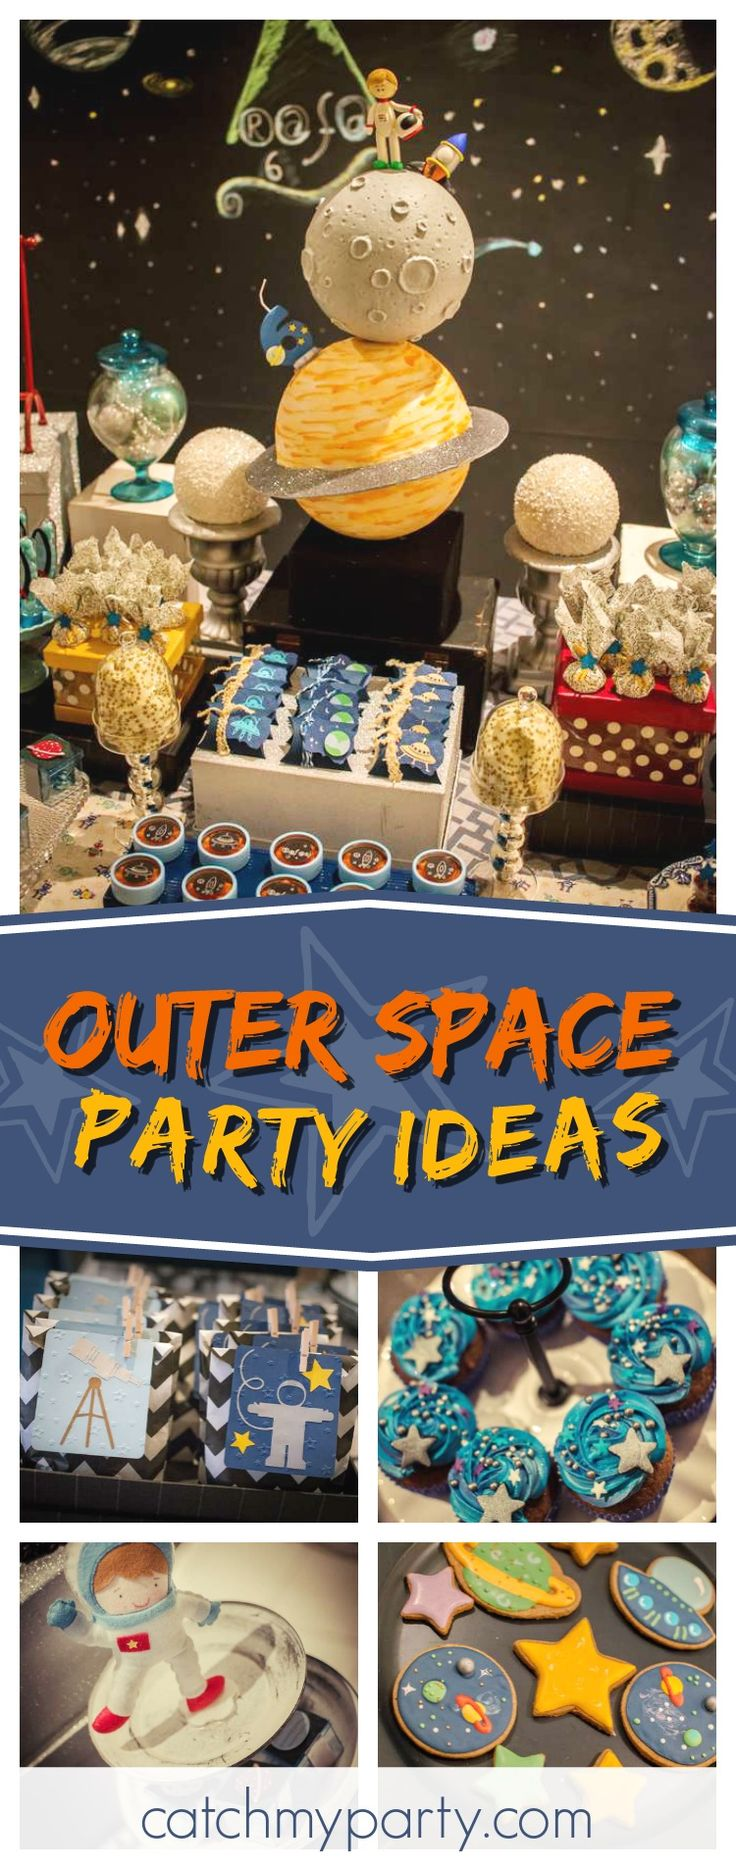 194 best outer space party ideas images on pinterest for Decorations for outer space party